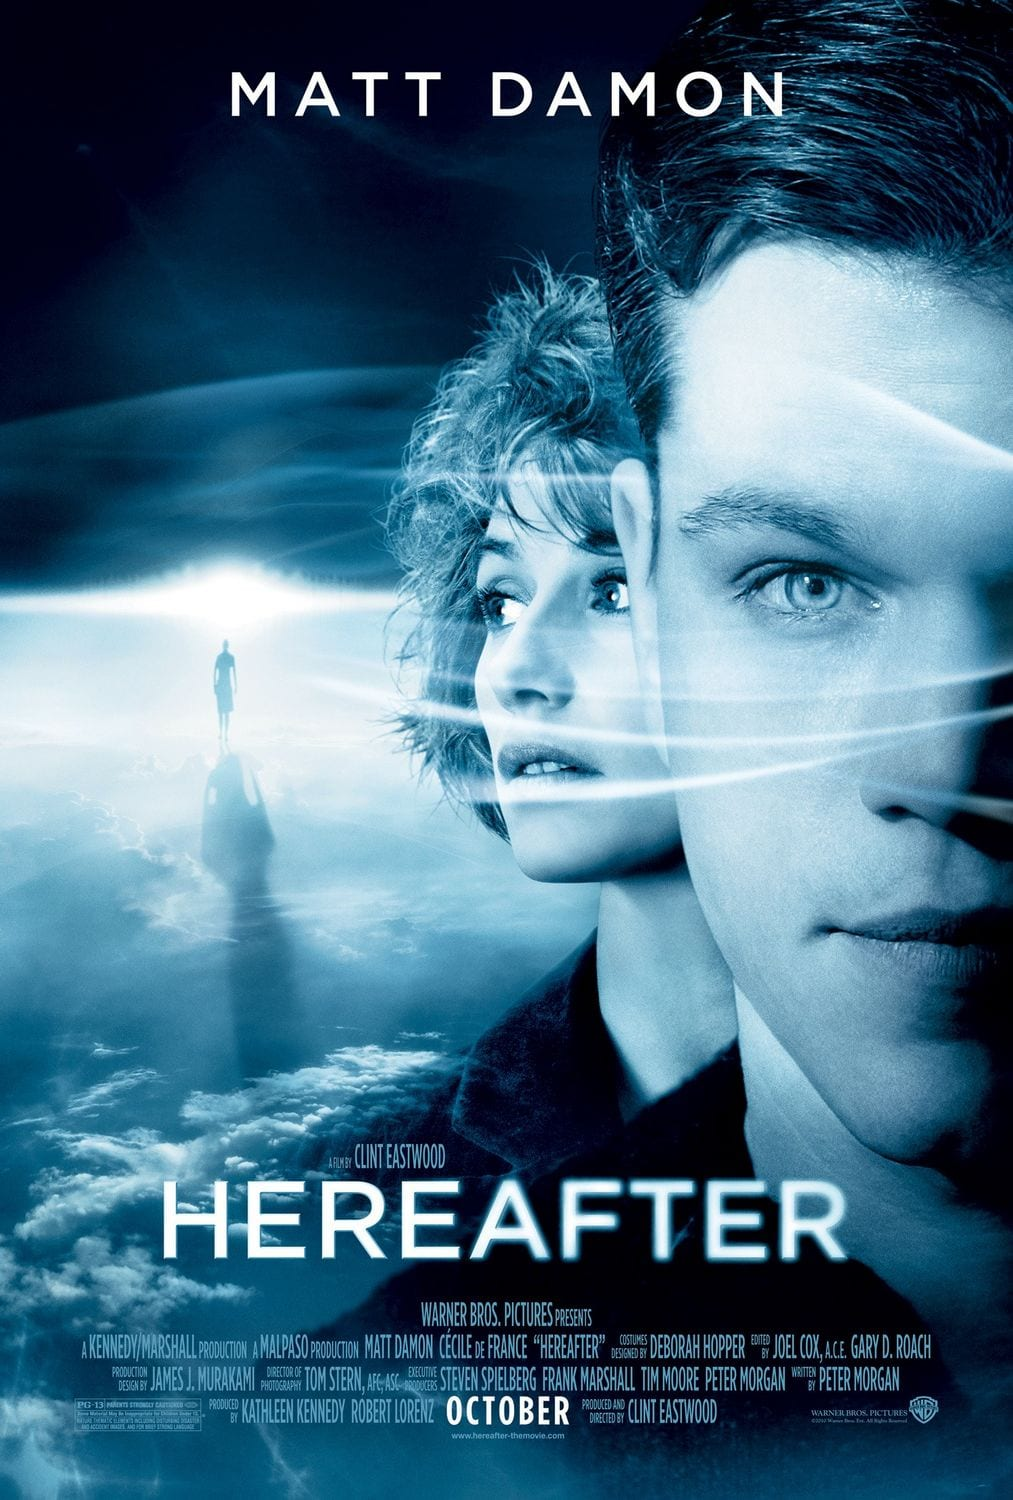 https://i0.wp.com/www.cinezapping.com/wp-content/uploads/2010/09/hereafter_xlg.jpg